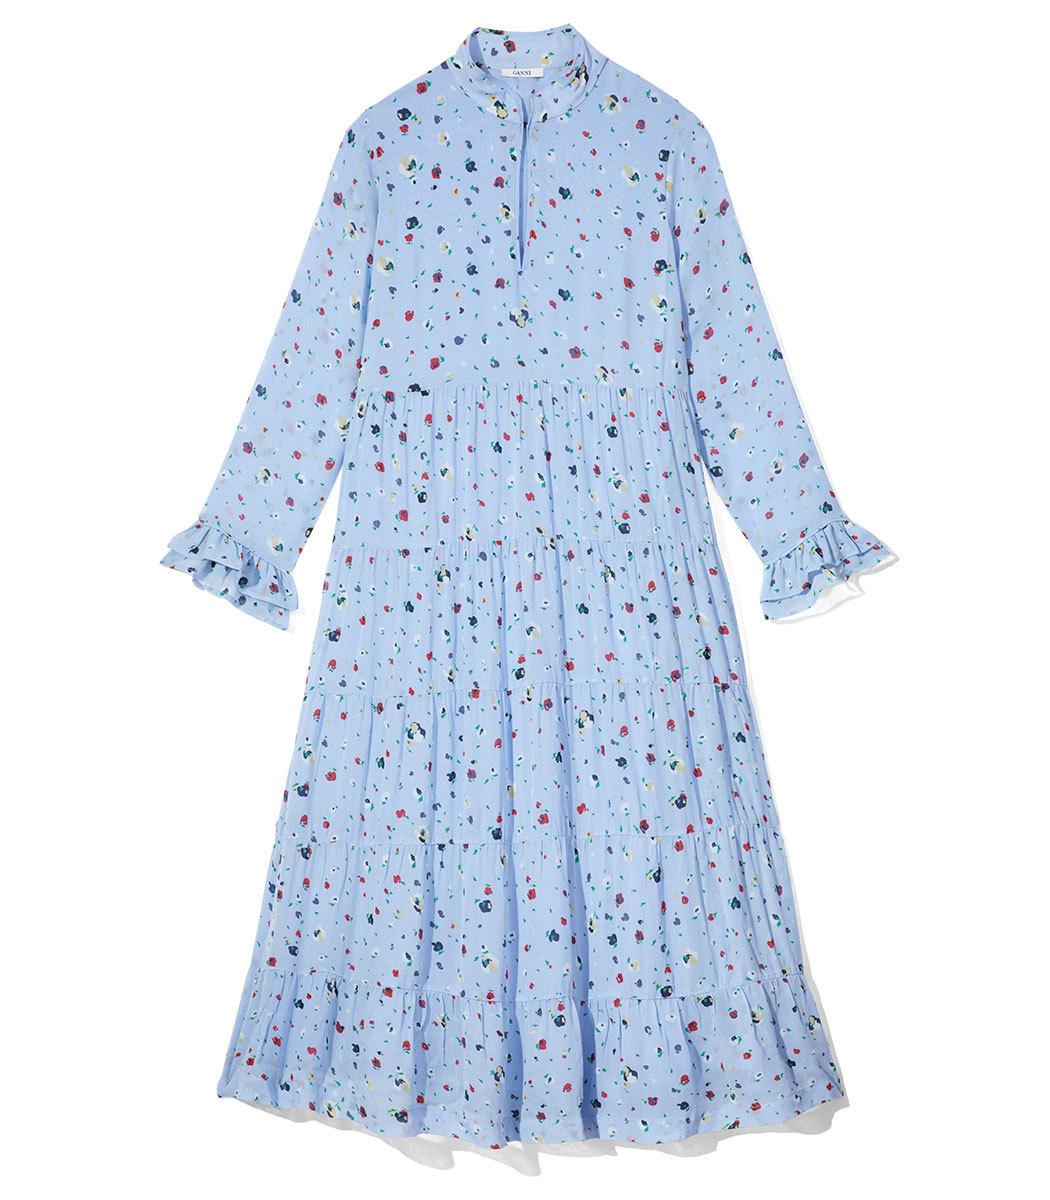 5832cb46cda0 Ganni Dainty Georgette Dress In Serenity Blue | ModeSens